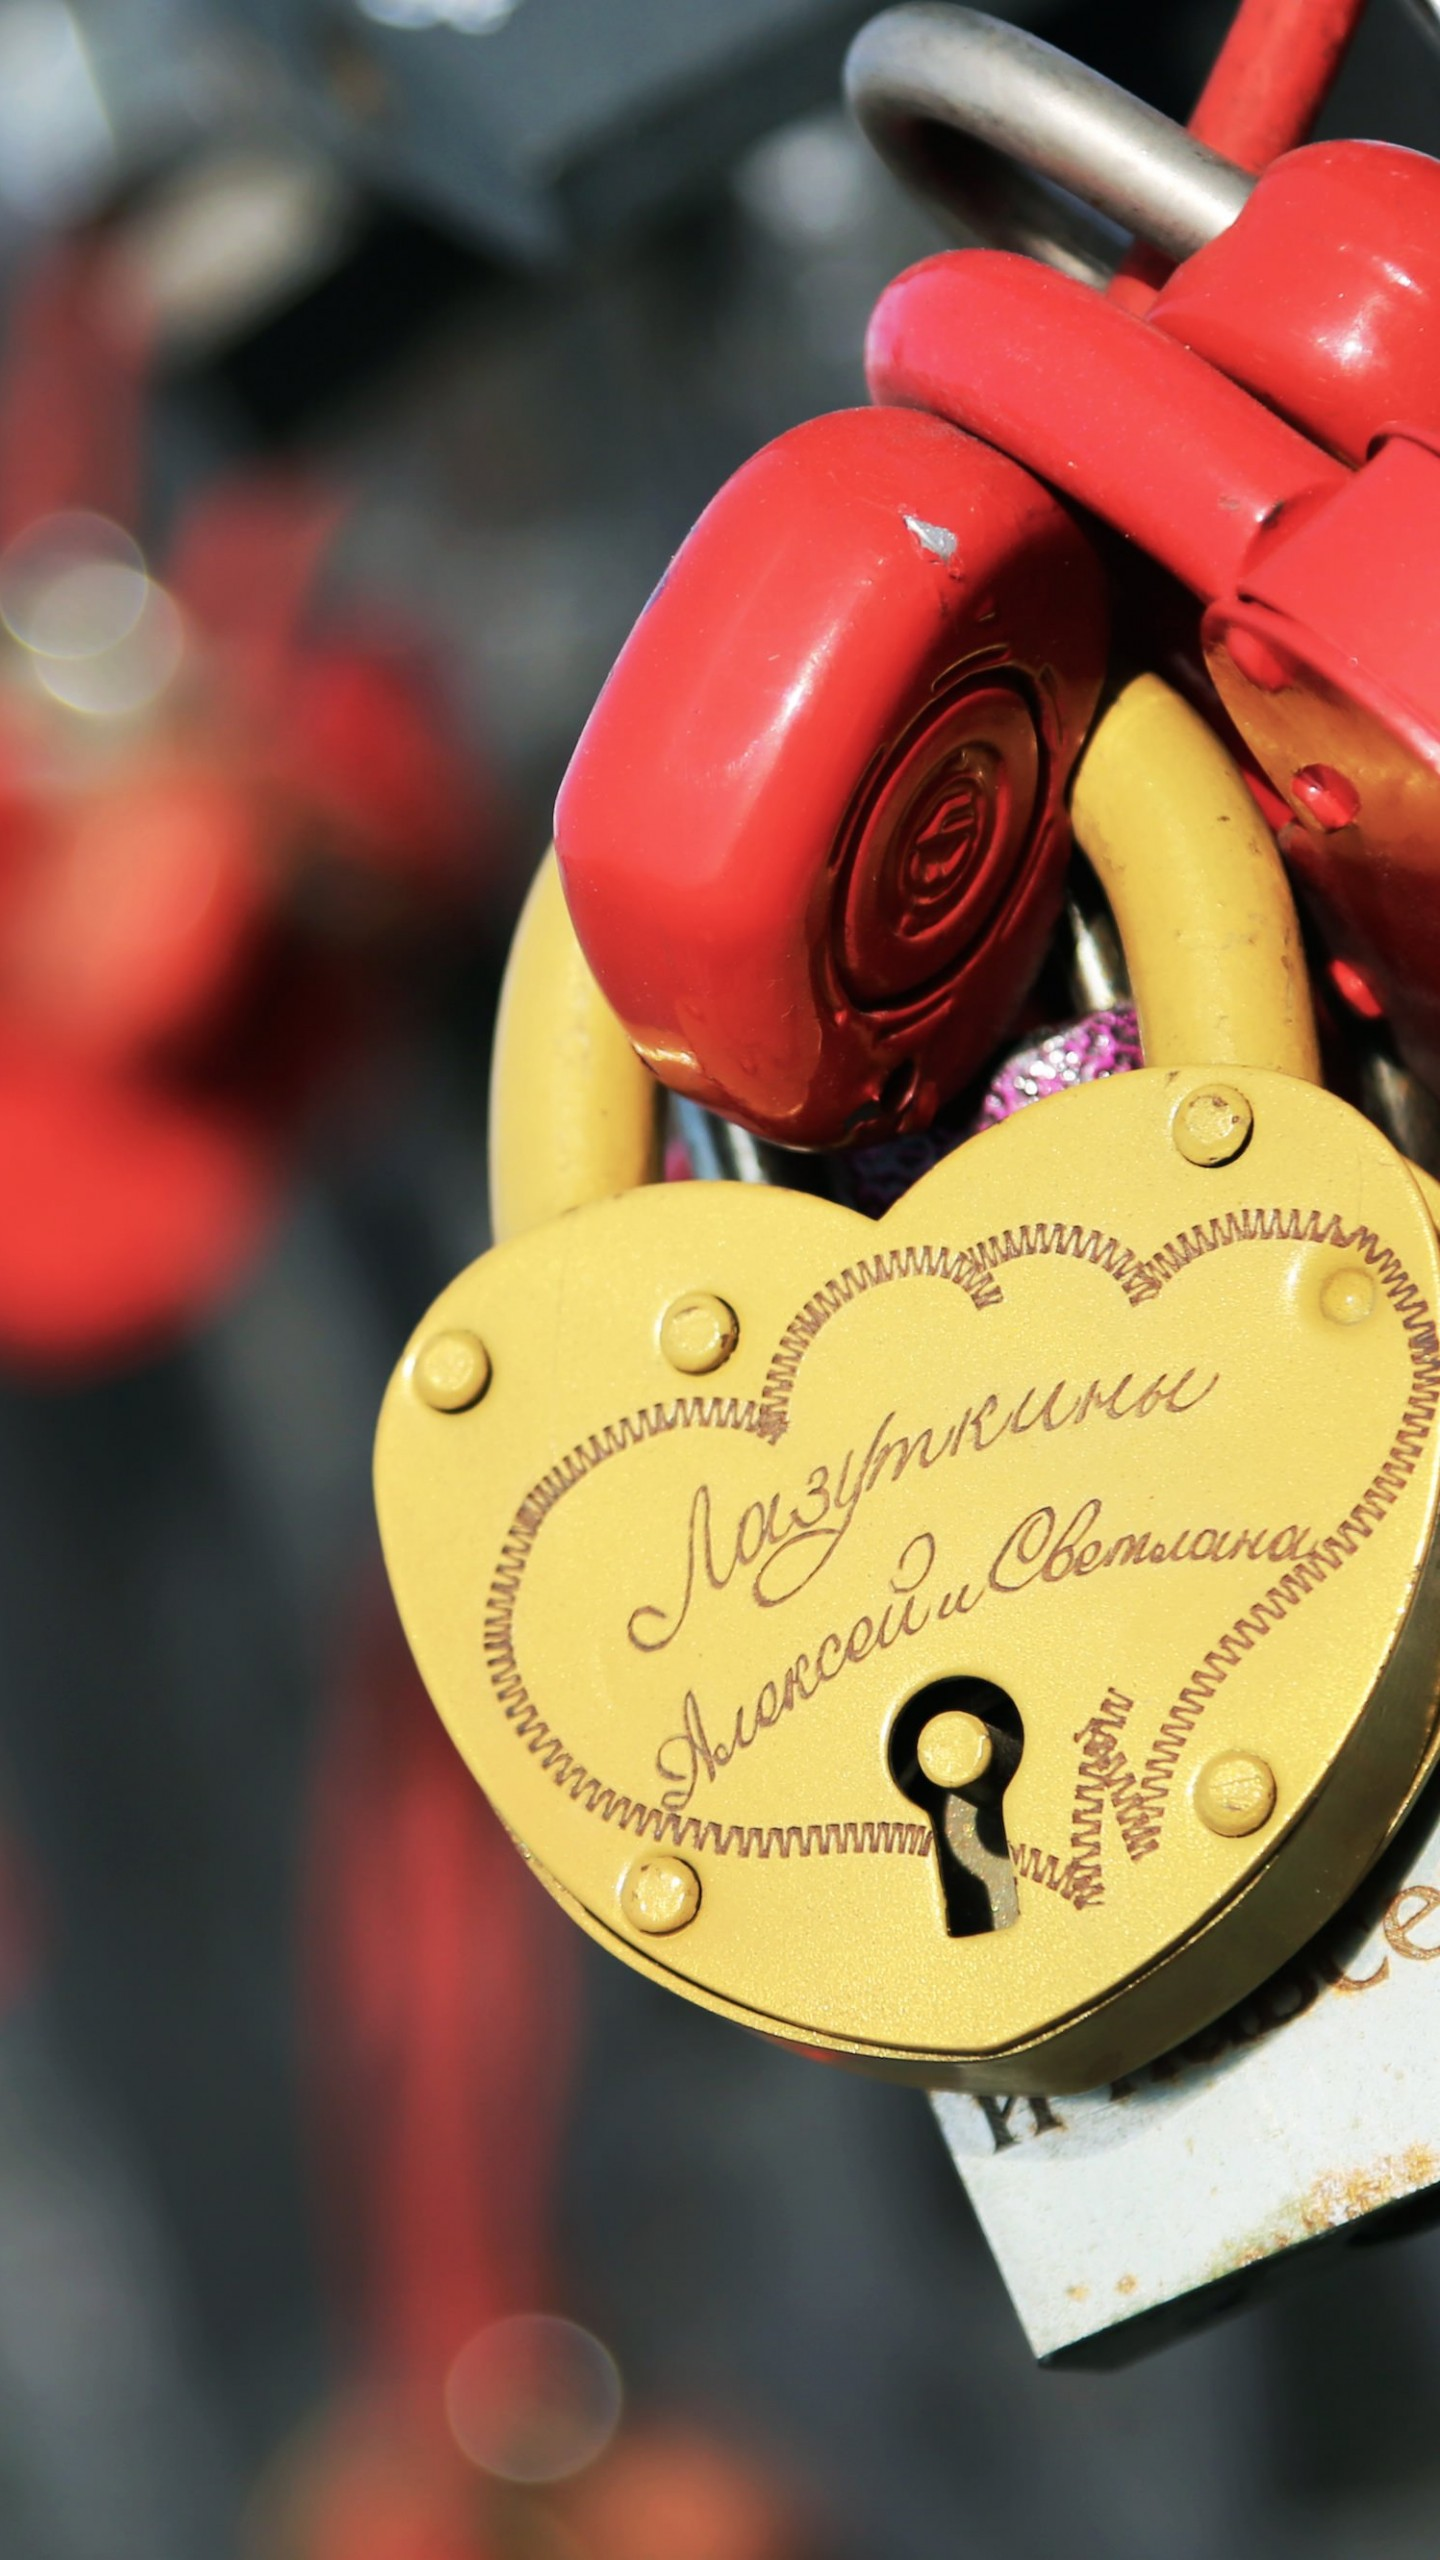 Love Lock Wallpaper for SAMSUNG Galaxy Note 4